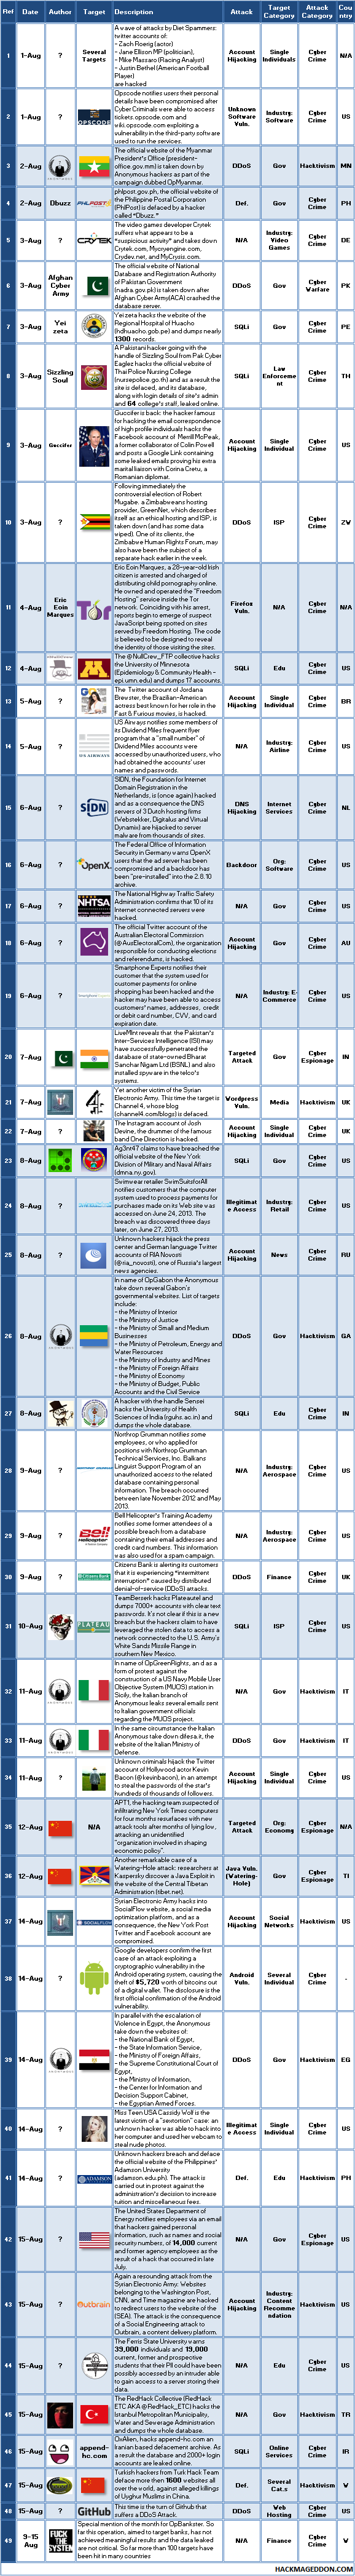 1-15 August 2013 Cyber Attacks Timeline Addendum